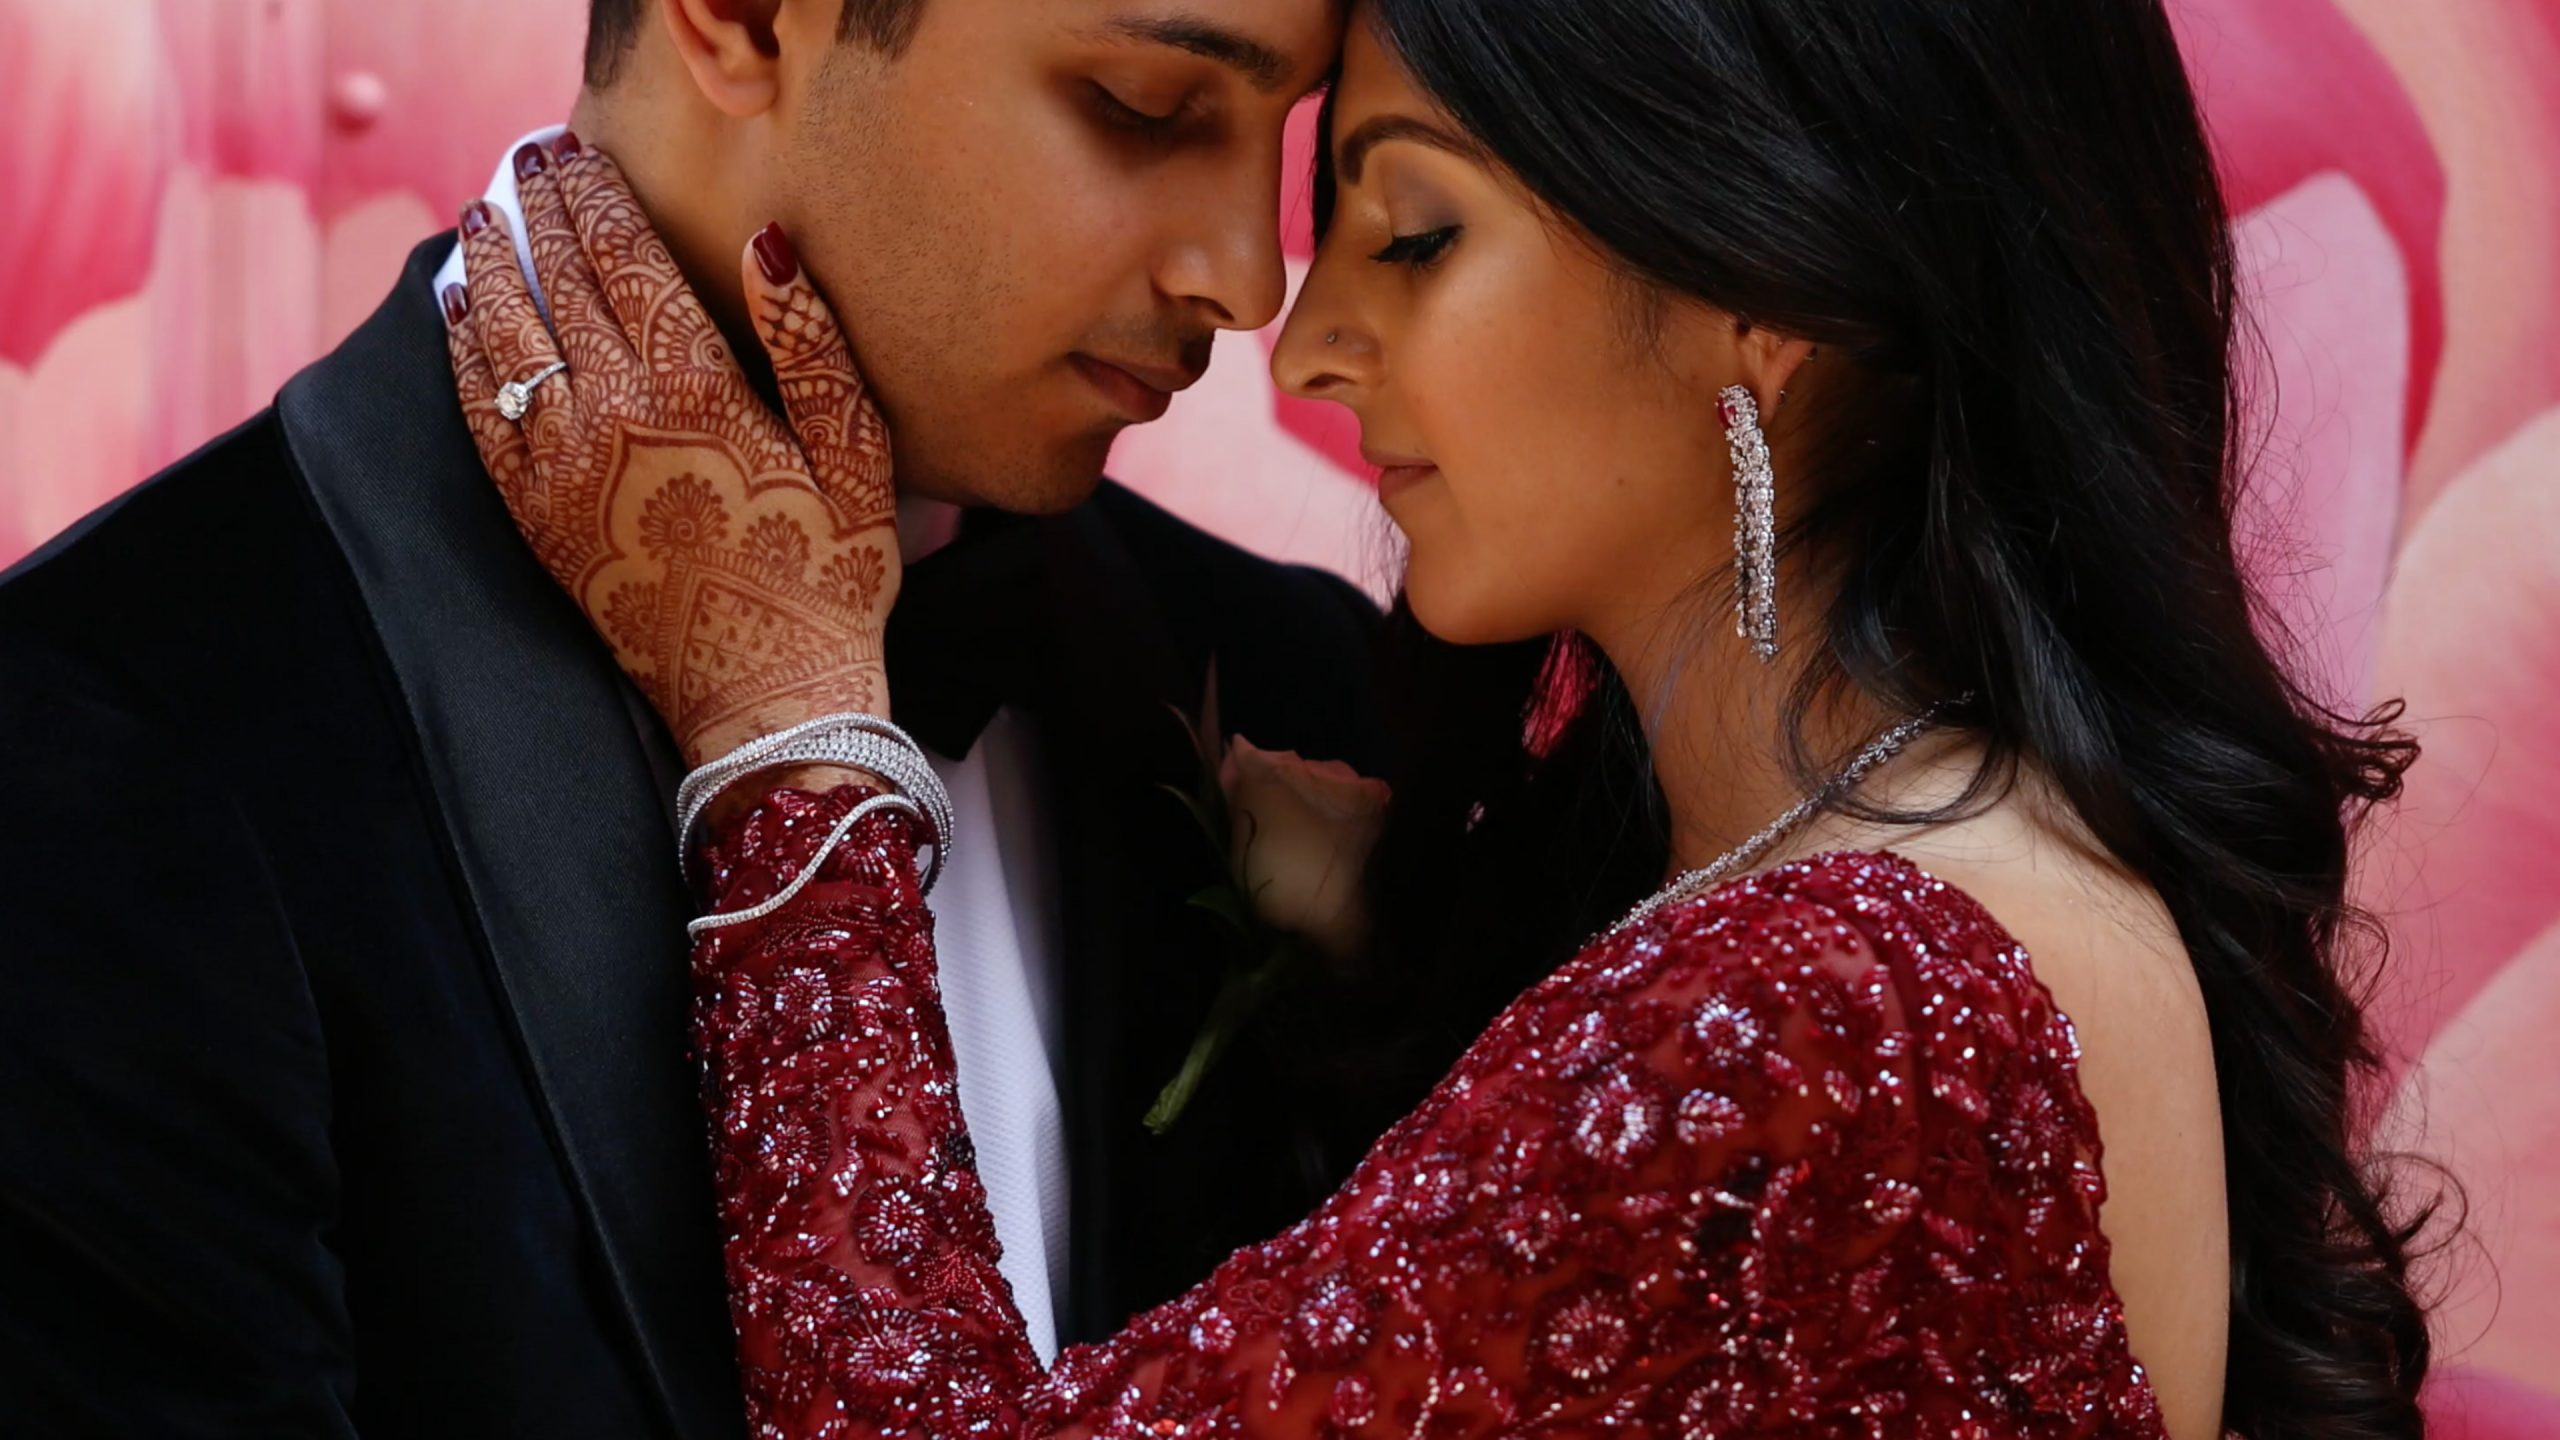 indian bride and groom romantic shot with henna hand and ring